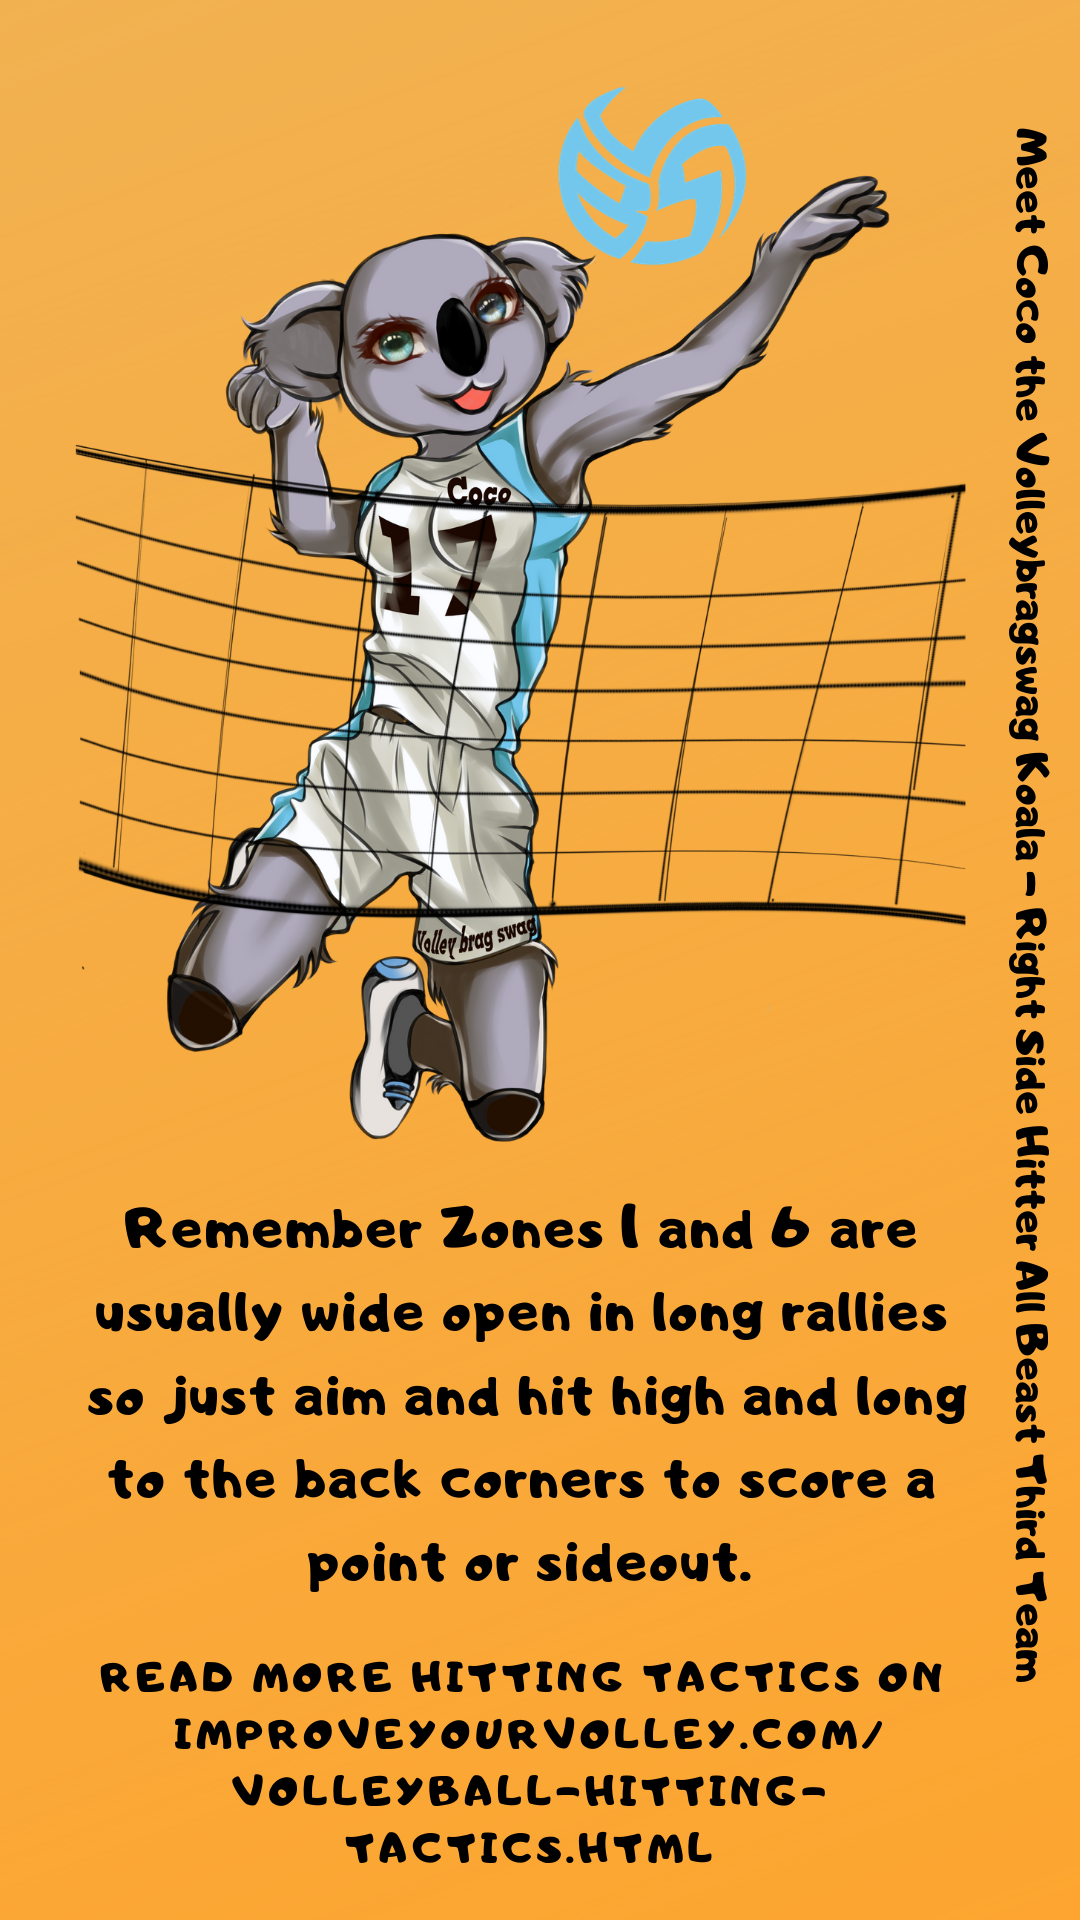 Hitting Tactics: Remember Zone 1 and 6 are often quite open during long rallies, so hit high and long aiming for the deep corners of the opposing court.